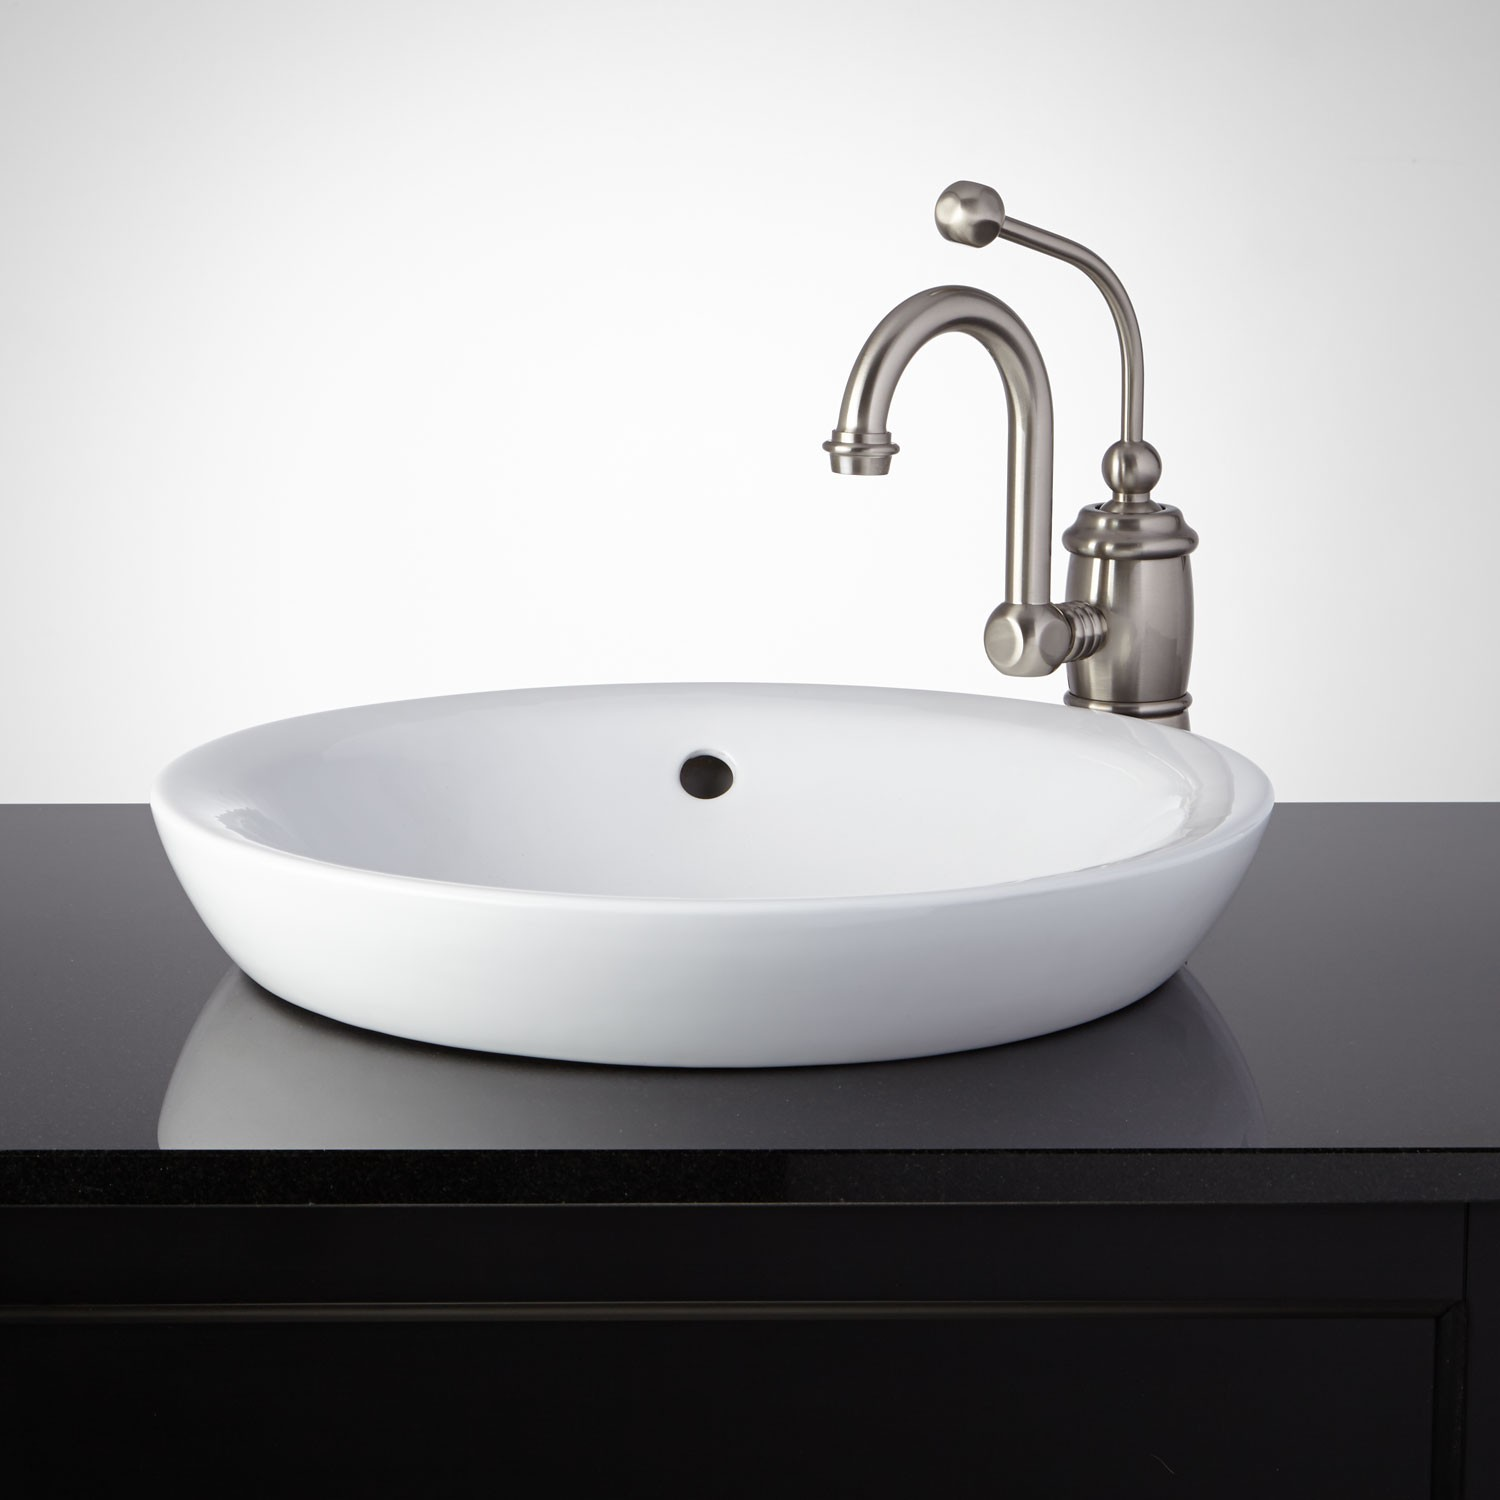 bathroom sinks ... this semi-recessed porcelain sink gives your bathroom a stylish, modern DASNMAG